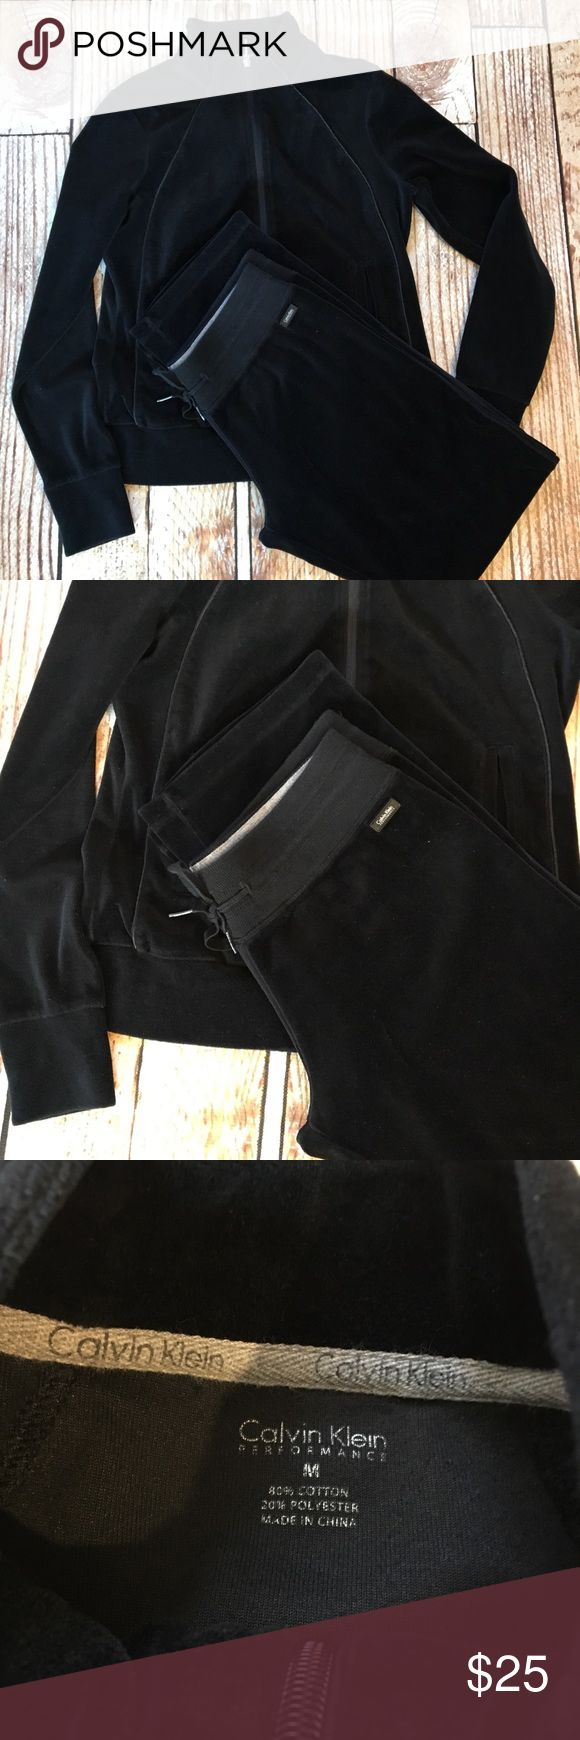 """Calvin Klein Performance black velour track suit Calvin Klein Performance black velour track suit. Top is a medium and bottoms are a small.  🌵Bundle deals available. I carry various sizes/brands. 🌵No trades, holds, or modeling. 🌵All reasonable offers accepted only through """"offer"""" button. No lowball offers please. Please submit final offer willing to pay as I prefer to not counteroffer. 🌵Happy Poshing! Calvin Klein Pants Track Pants & Joggers"""